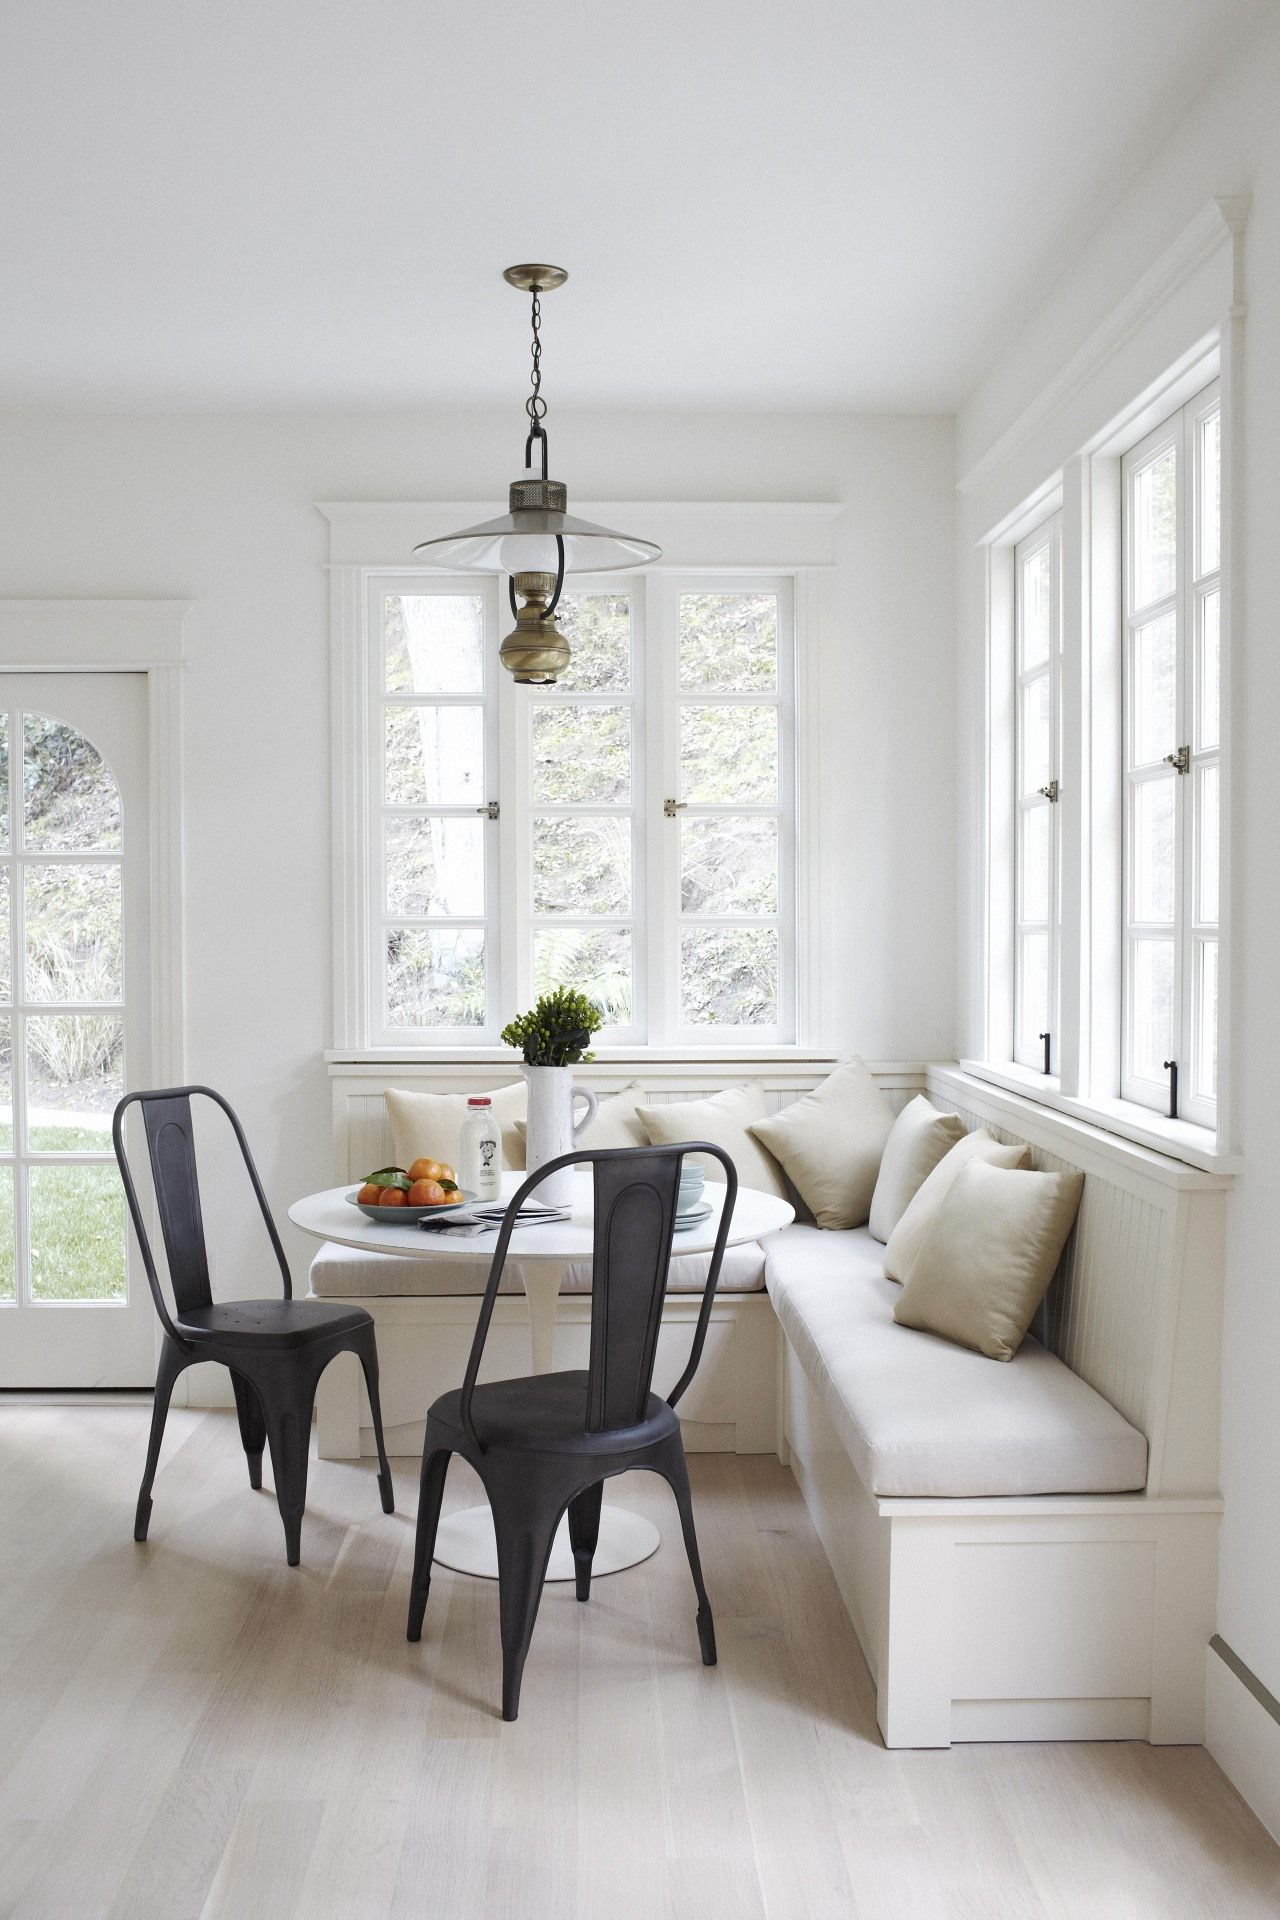 Pin By Jayne Beilby On Dream Spaces Dining Nook Charming